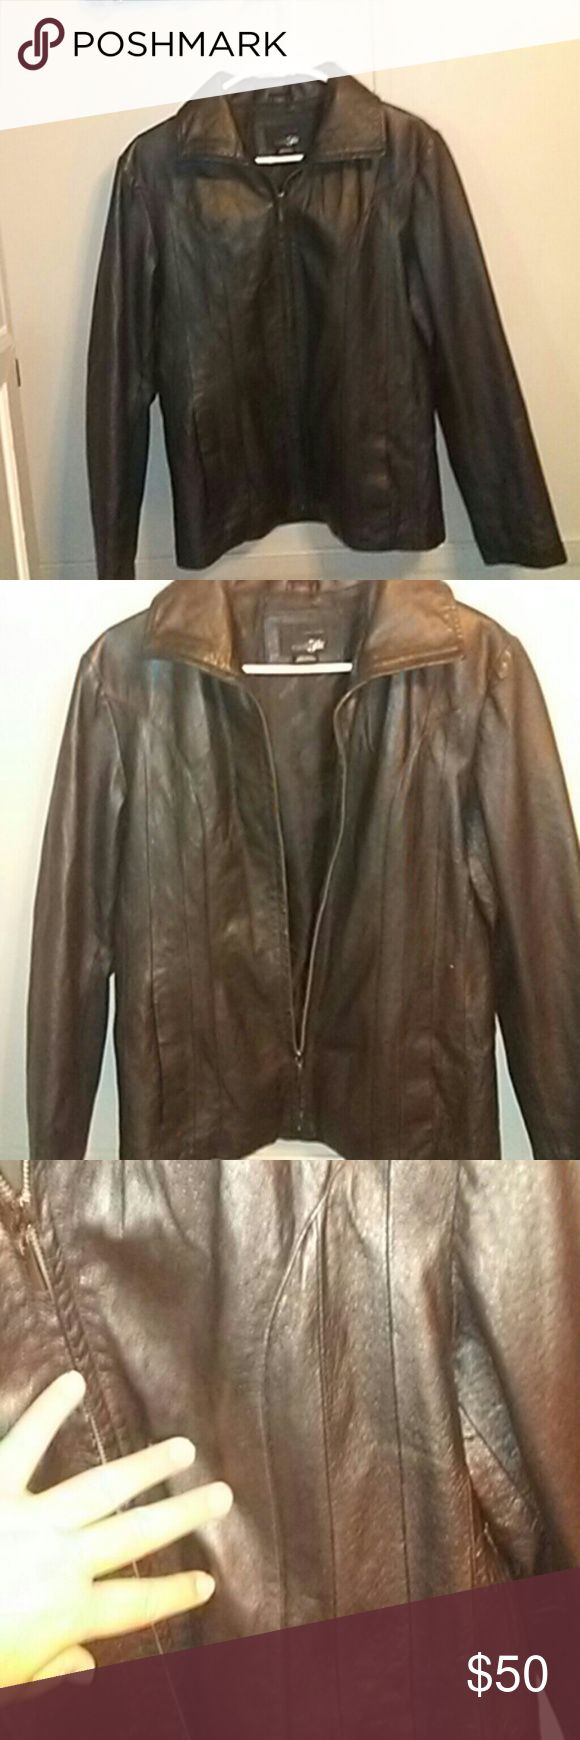 EAST 5TH GENUINE LEATHER JACKET This belongs to a friend of mine whose ex boyfriend bought it for her. FLAWLESS... LEATHER IS PERFECT!!!  EVETYTHING IS IN WORKING ORDER!!  she is open to offers!!!  STILL SMELLS LIKE FRESH LEATHER ON THE INSIDE!!! east 5th Jackets & Coats